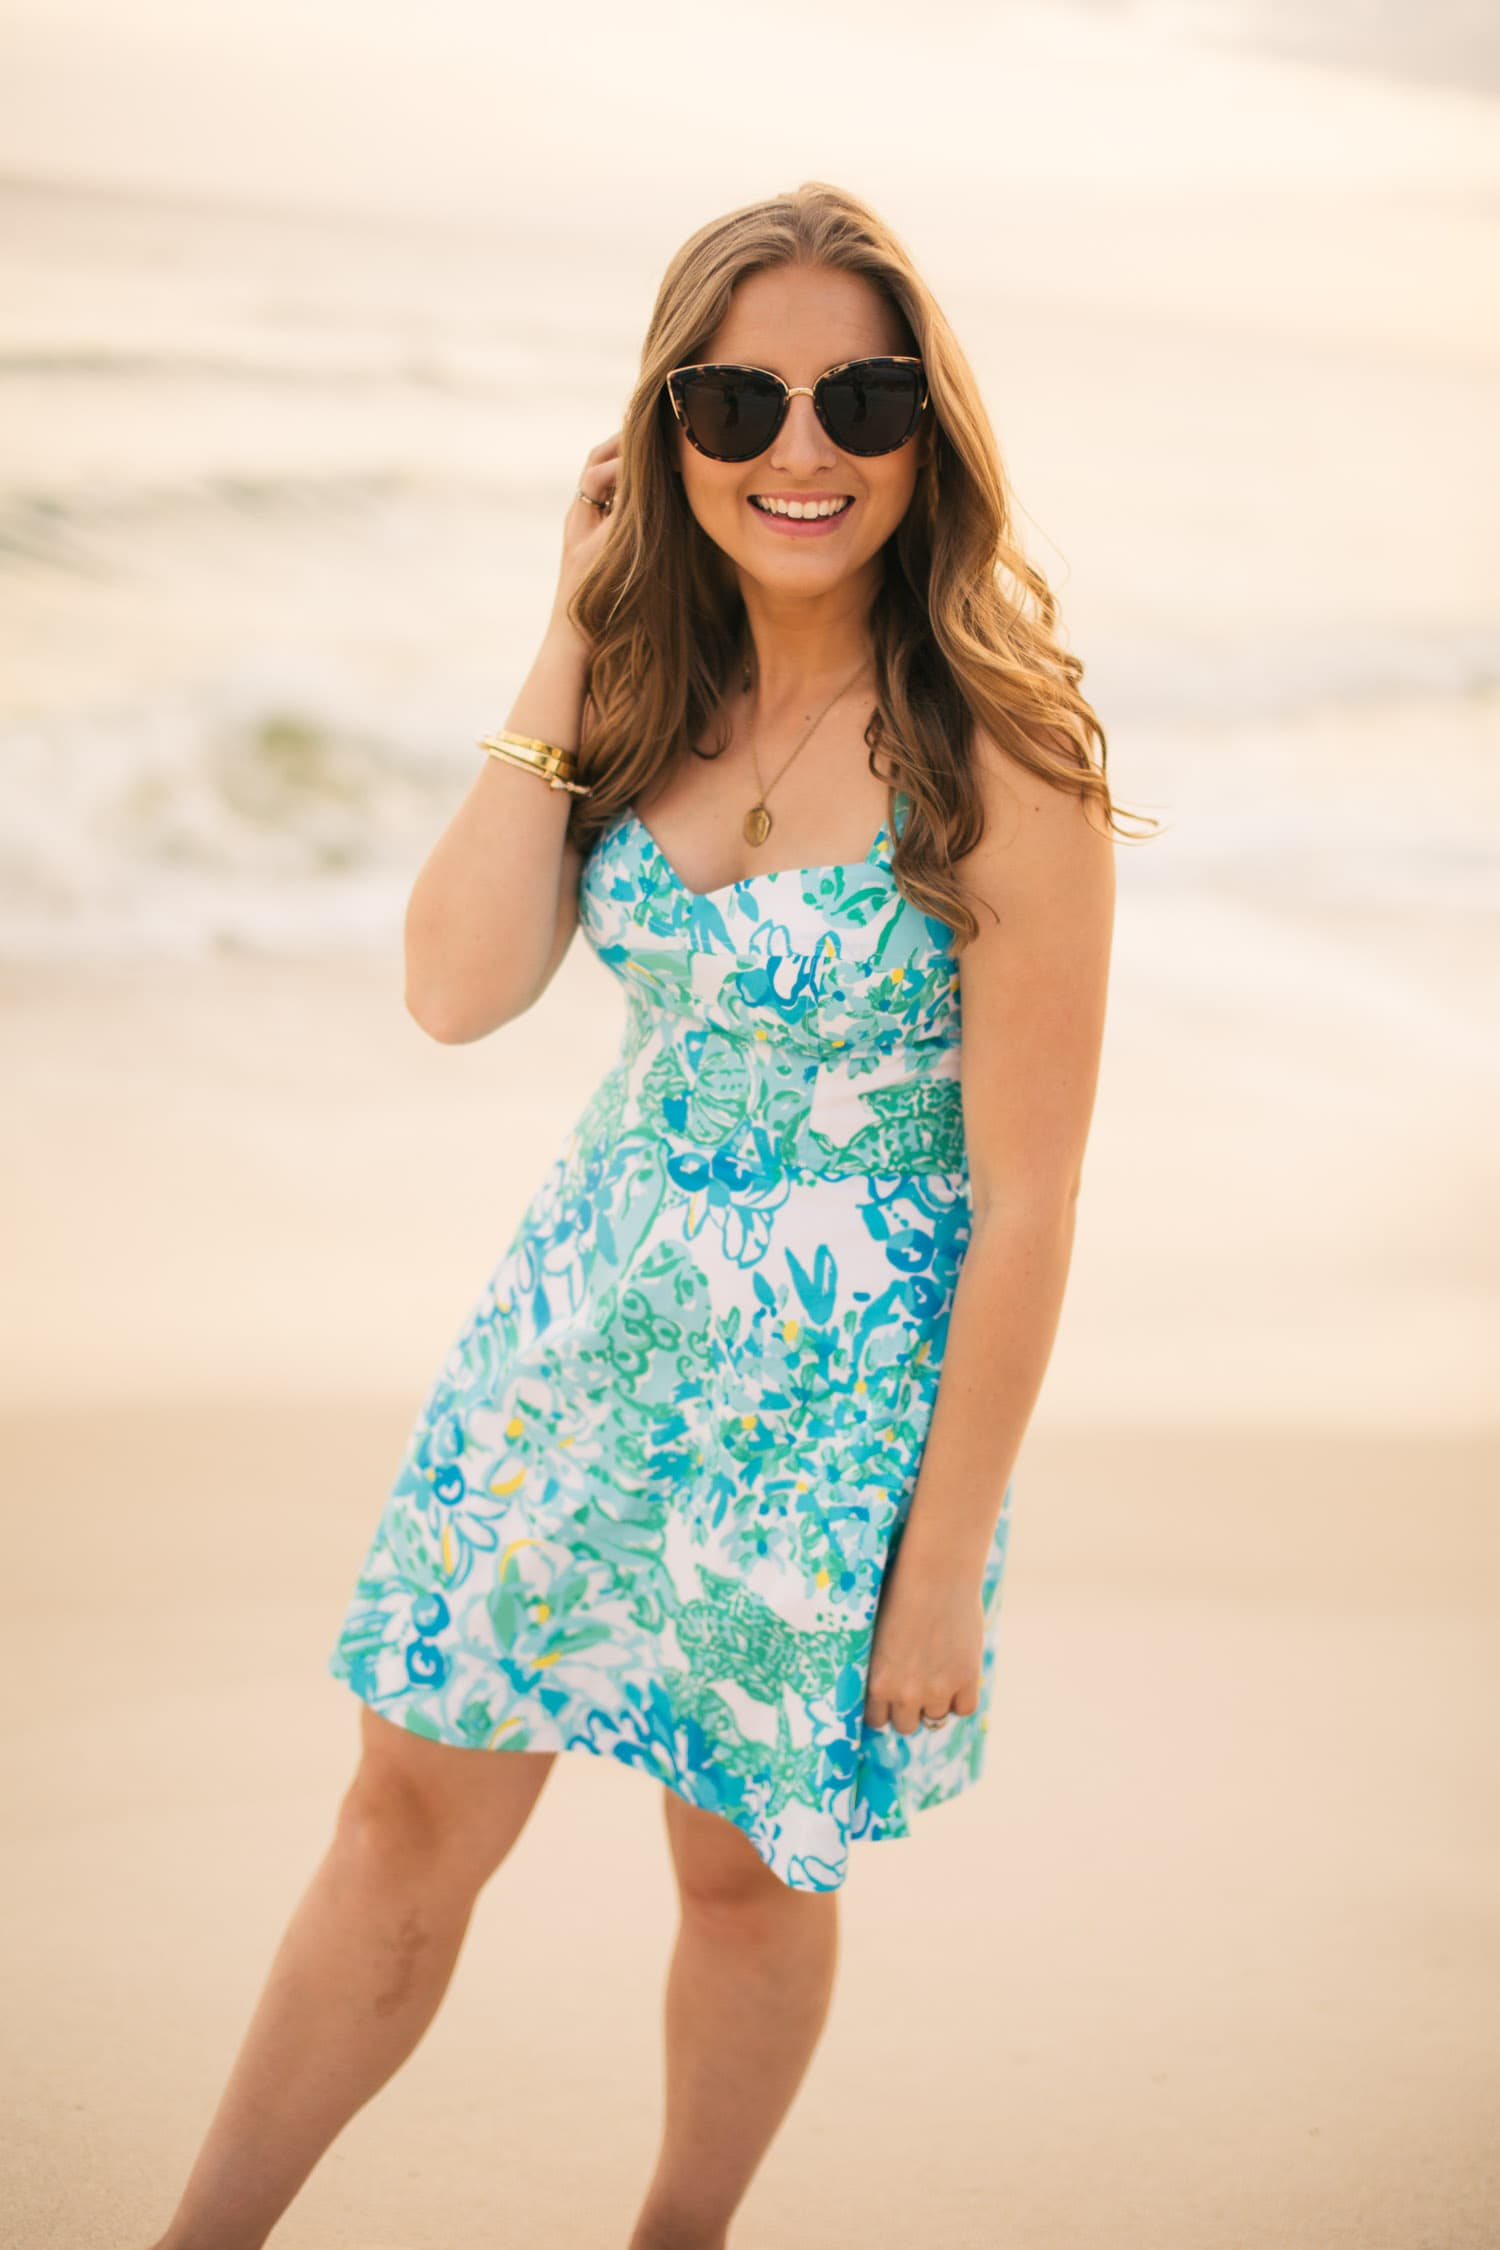 What to buy at the Lilly Pulitzer After Party Sale   Lilly Pulitzer Willow Dress In A Pinch Print   Outfit idea by style blogger Ashley Brooke Nicholas in Rosemary Beach, Florida